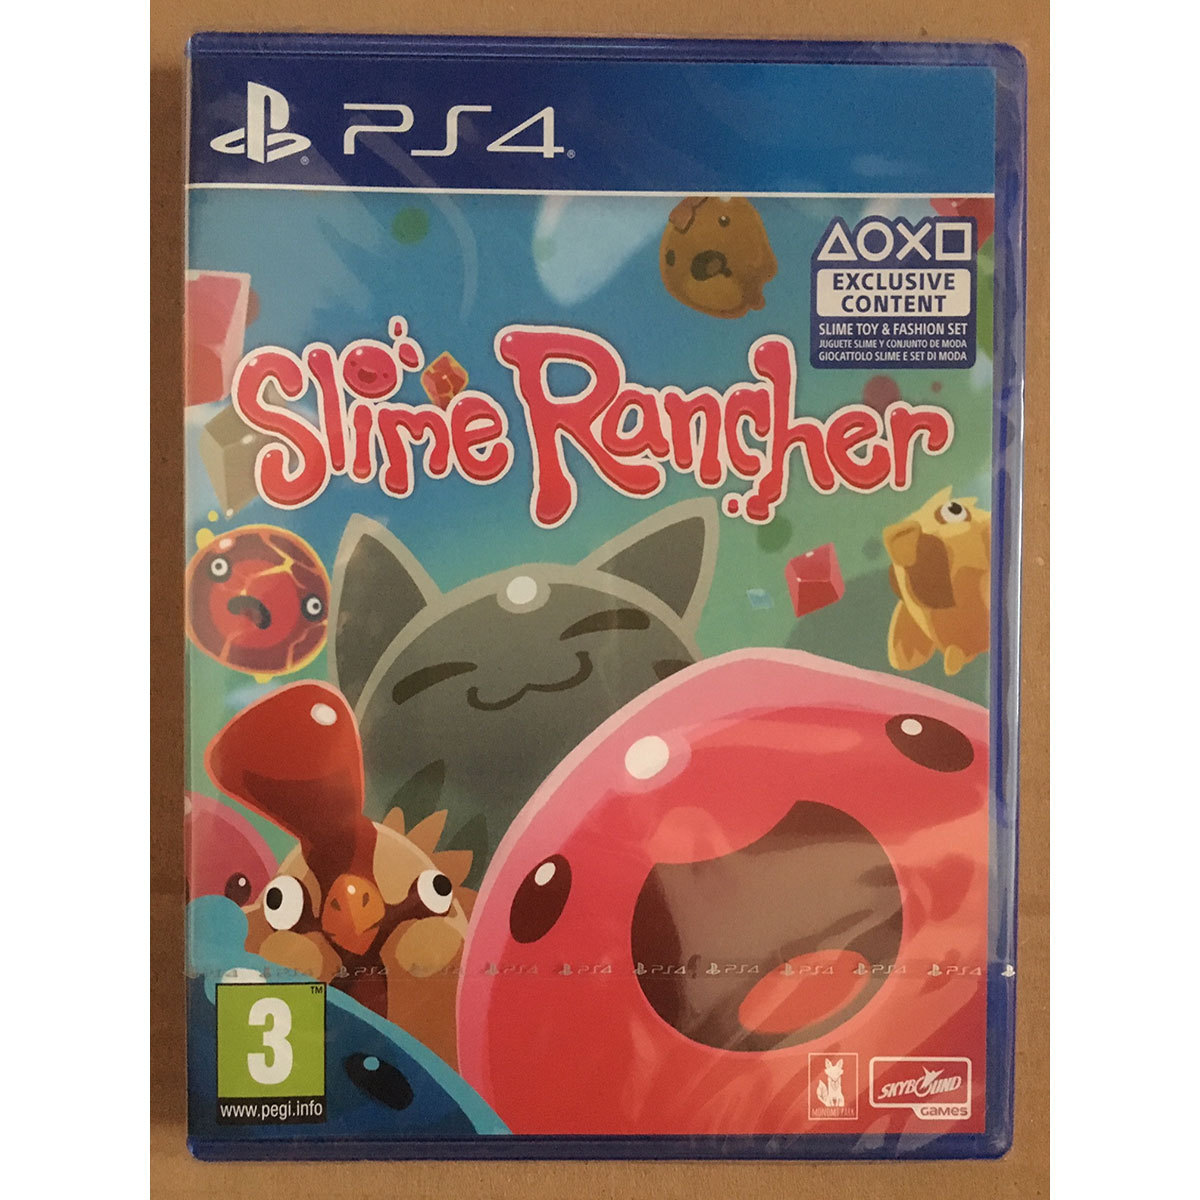 Details about Slime Rancher (PS4) New and Sealed